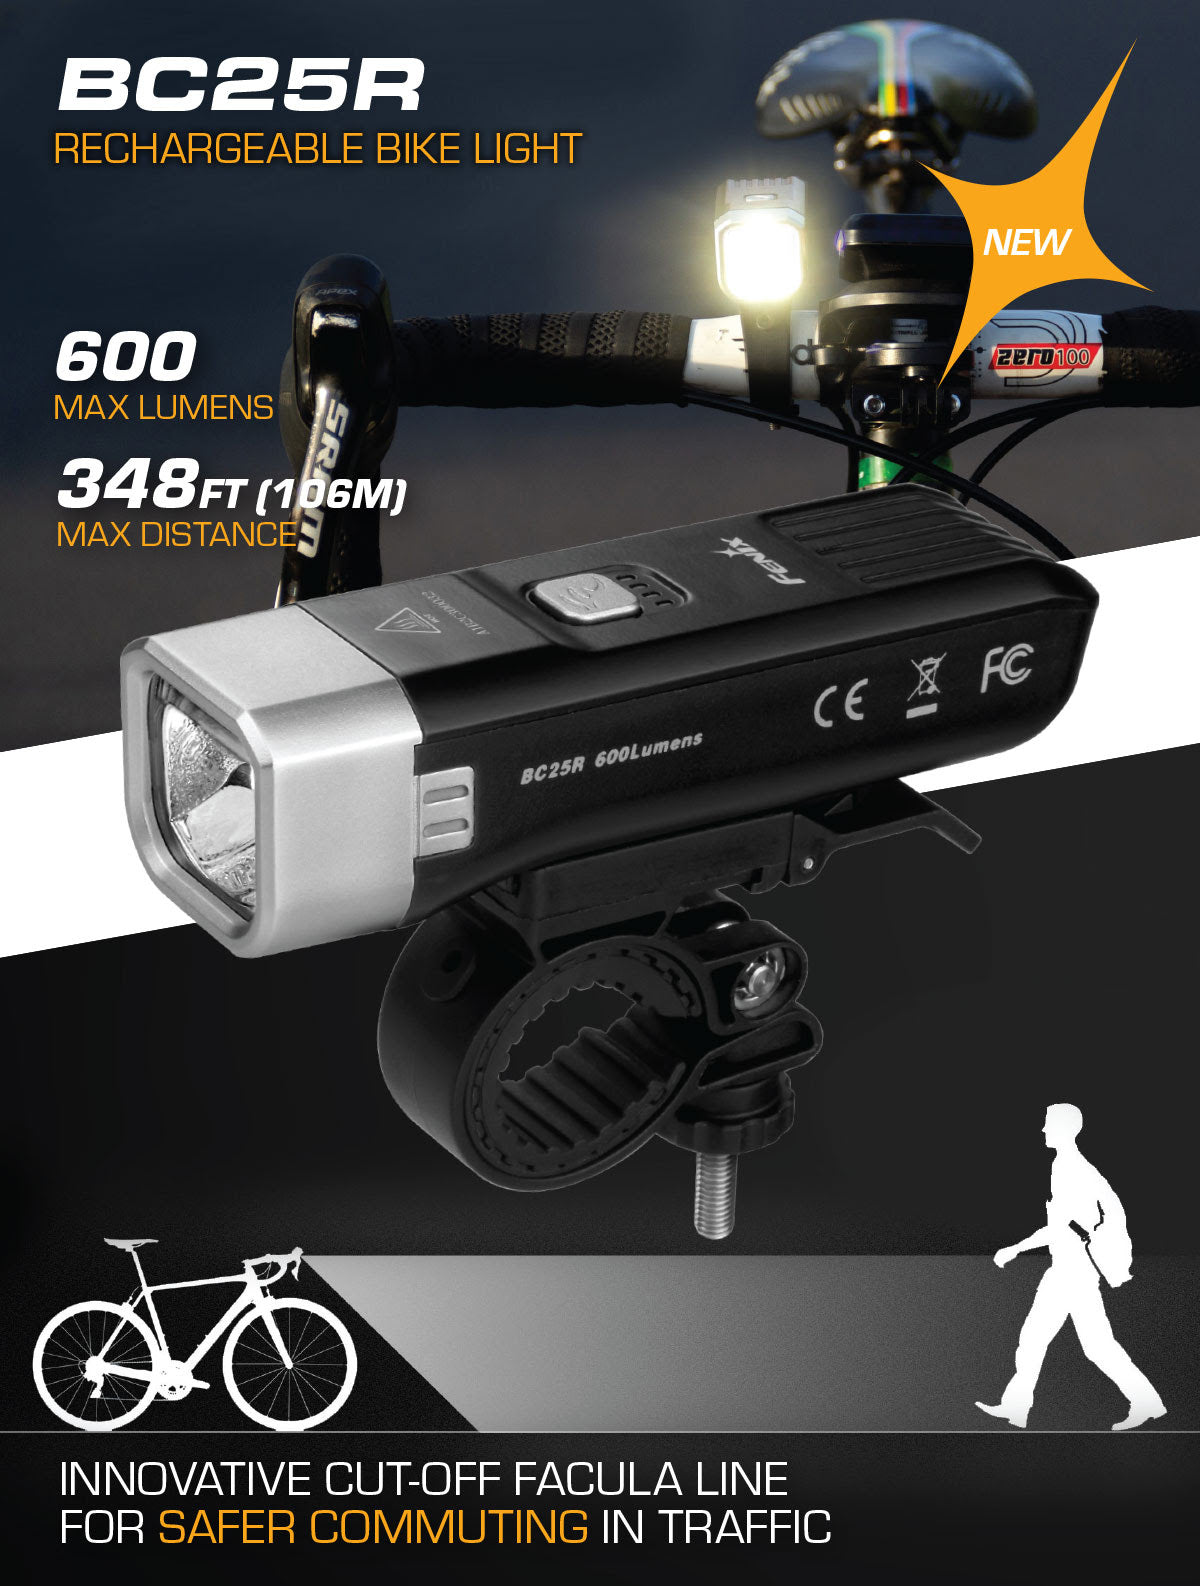 Fenix BC25R LED Bike Light, 600 Lumens USB Rechargeable Bicycle Light, Neutral White LED Light, Compact yet Powerful Light for Bike Trails and Races in India